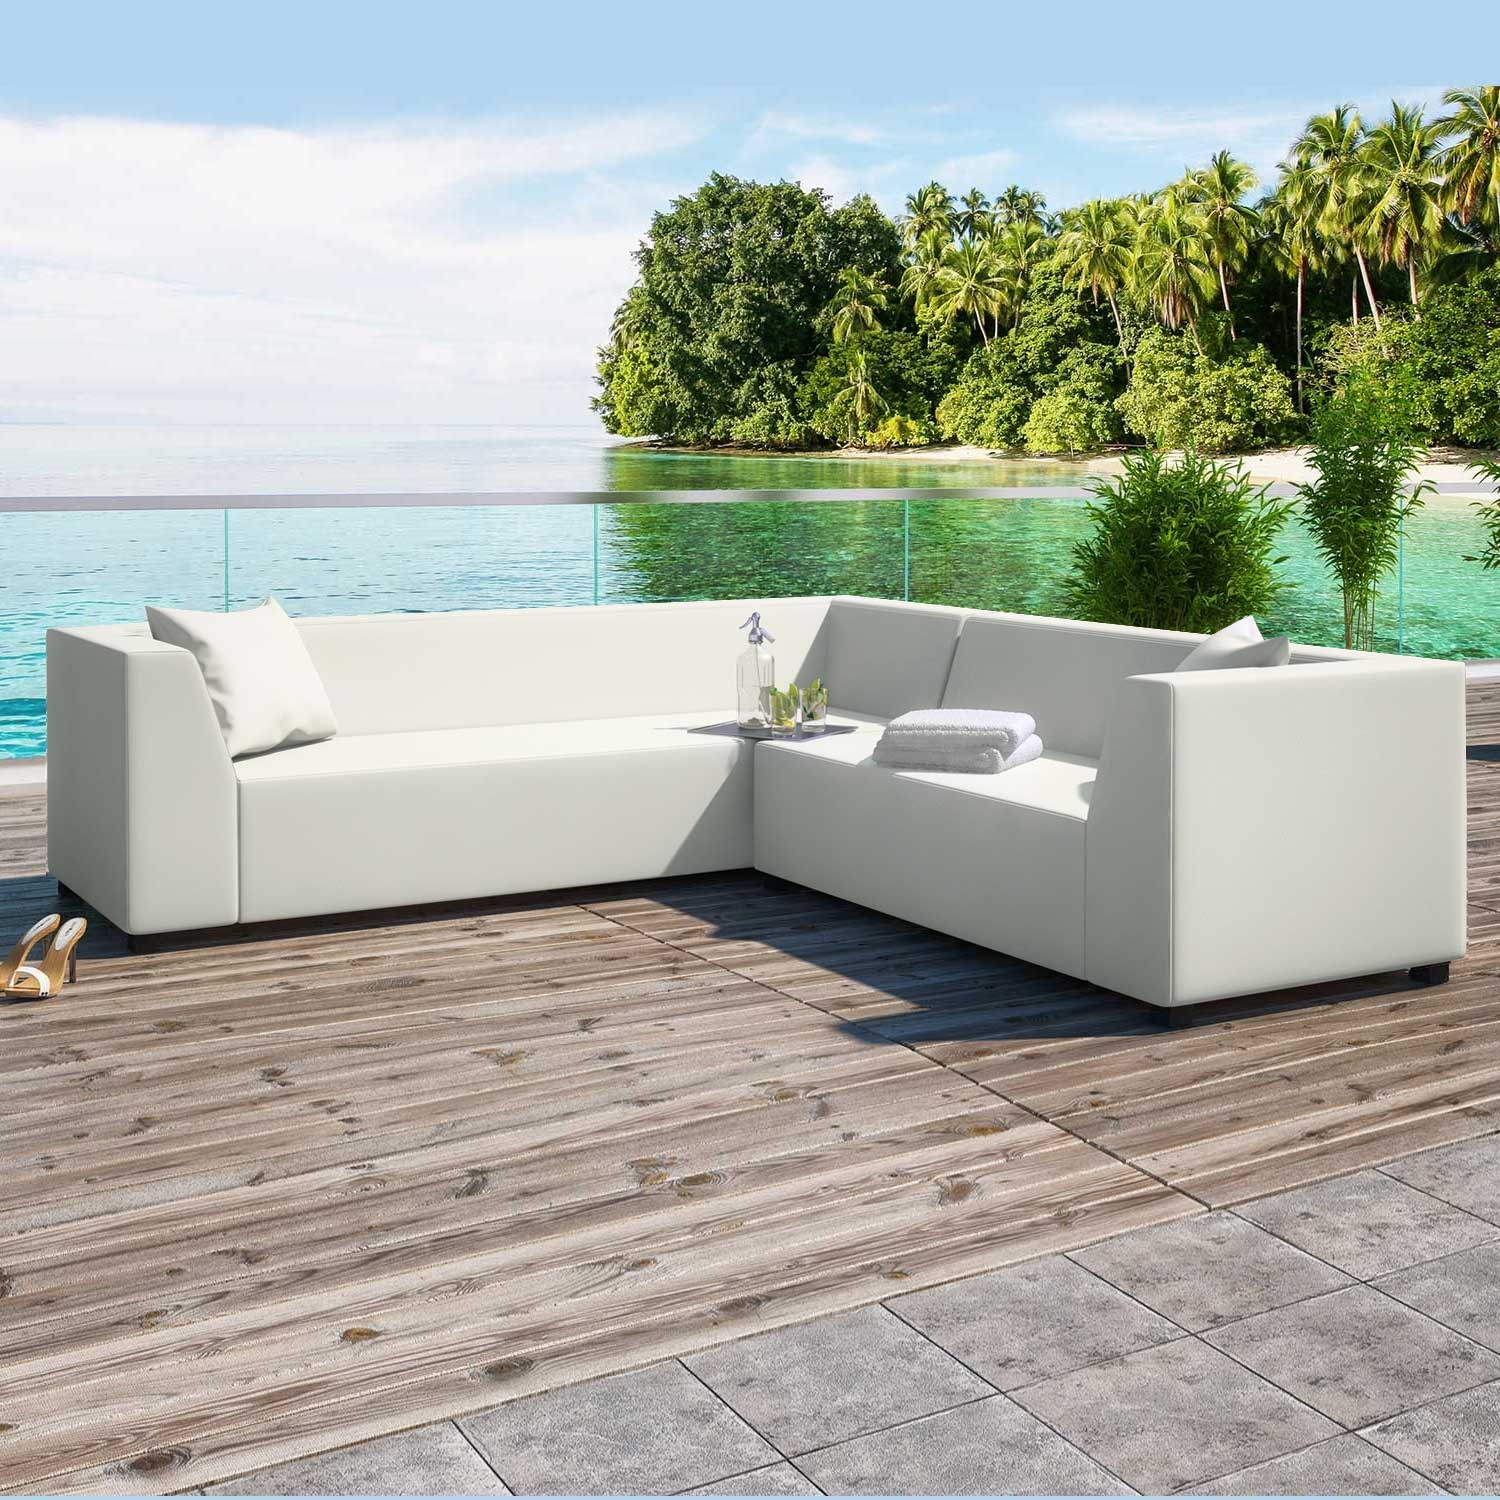 Alkmaar White 2 Piece Outdoor Garden Left Corner Sofa Collection